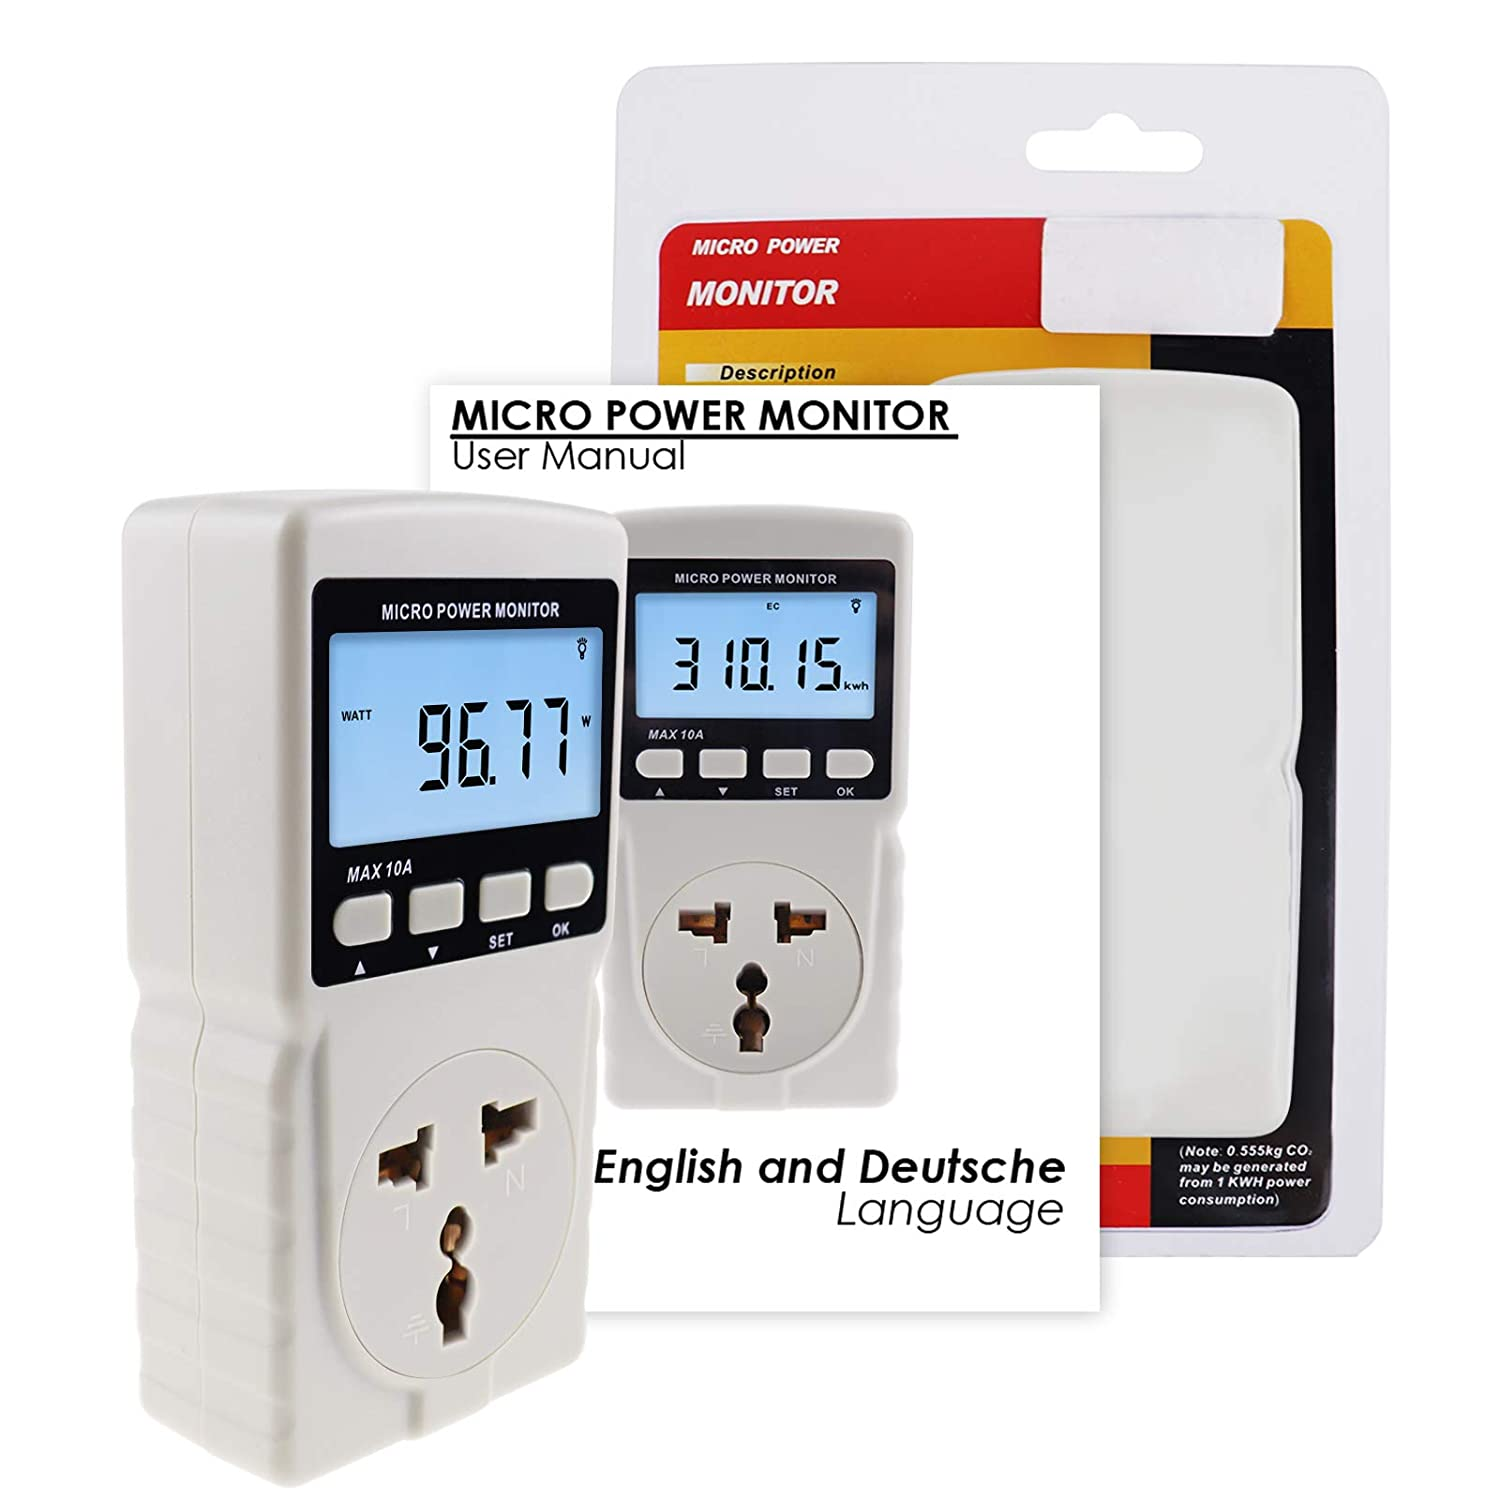 Plug-in Socket Design Power Meter Energy Watt Voltage Current Frequency Electricity Usage Monitor